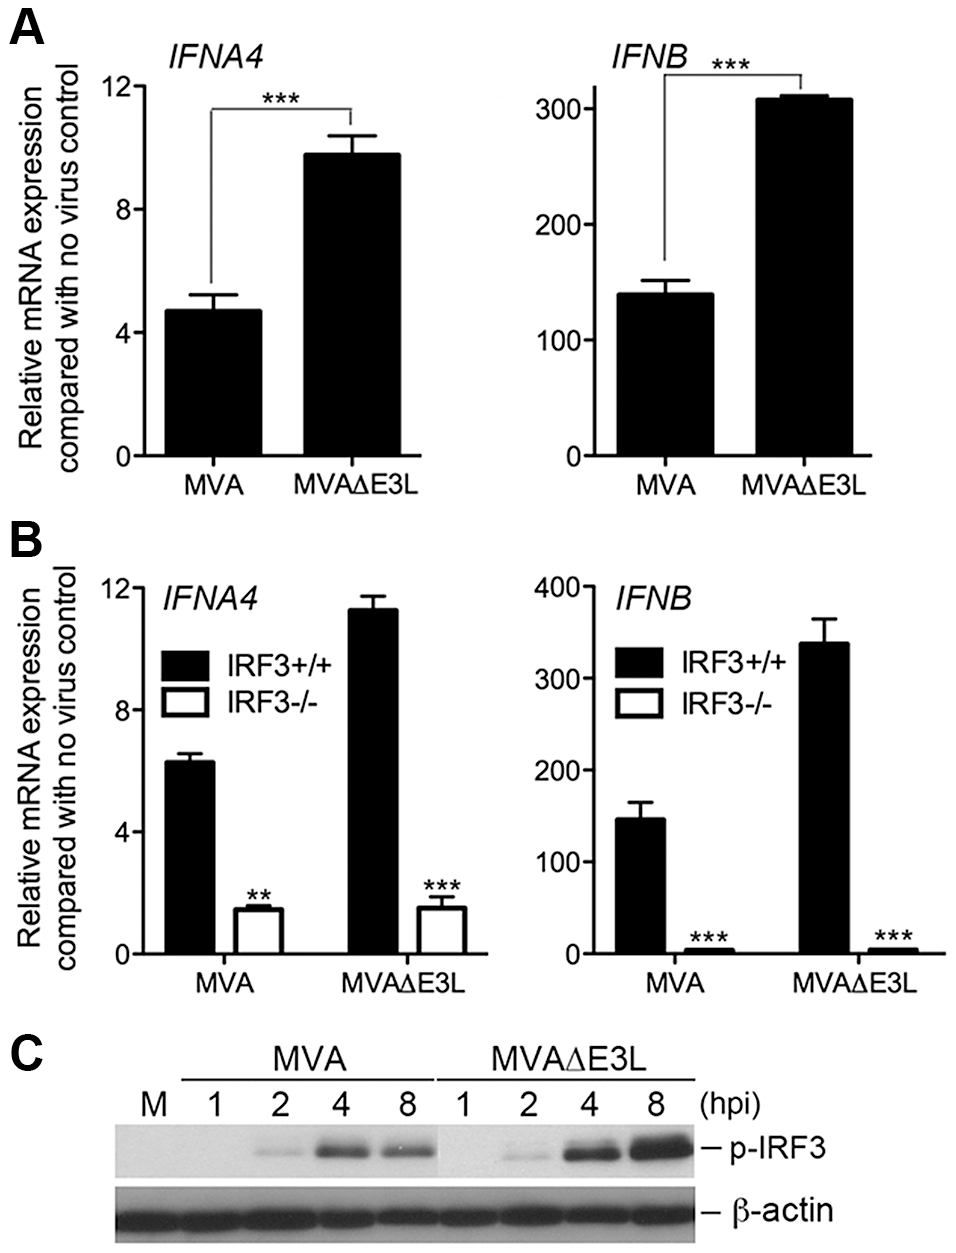 MVAΔE3L induces high levels of type I IFN gene expression in BMDCs than MVA does.